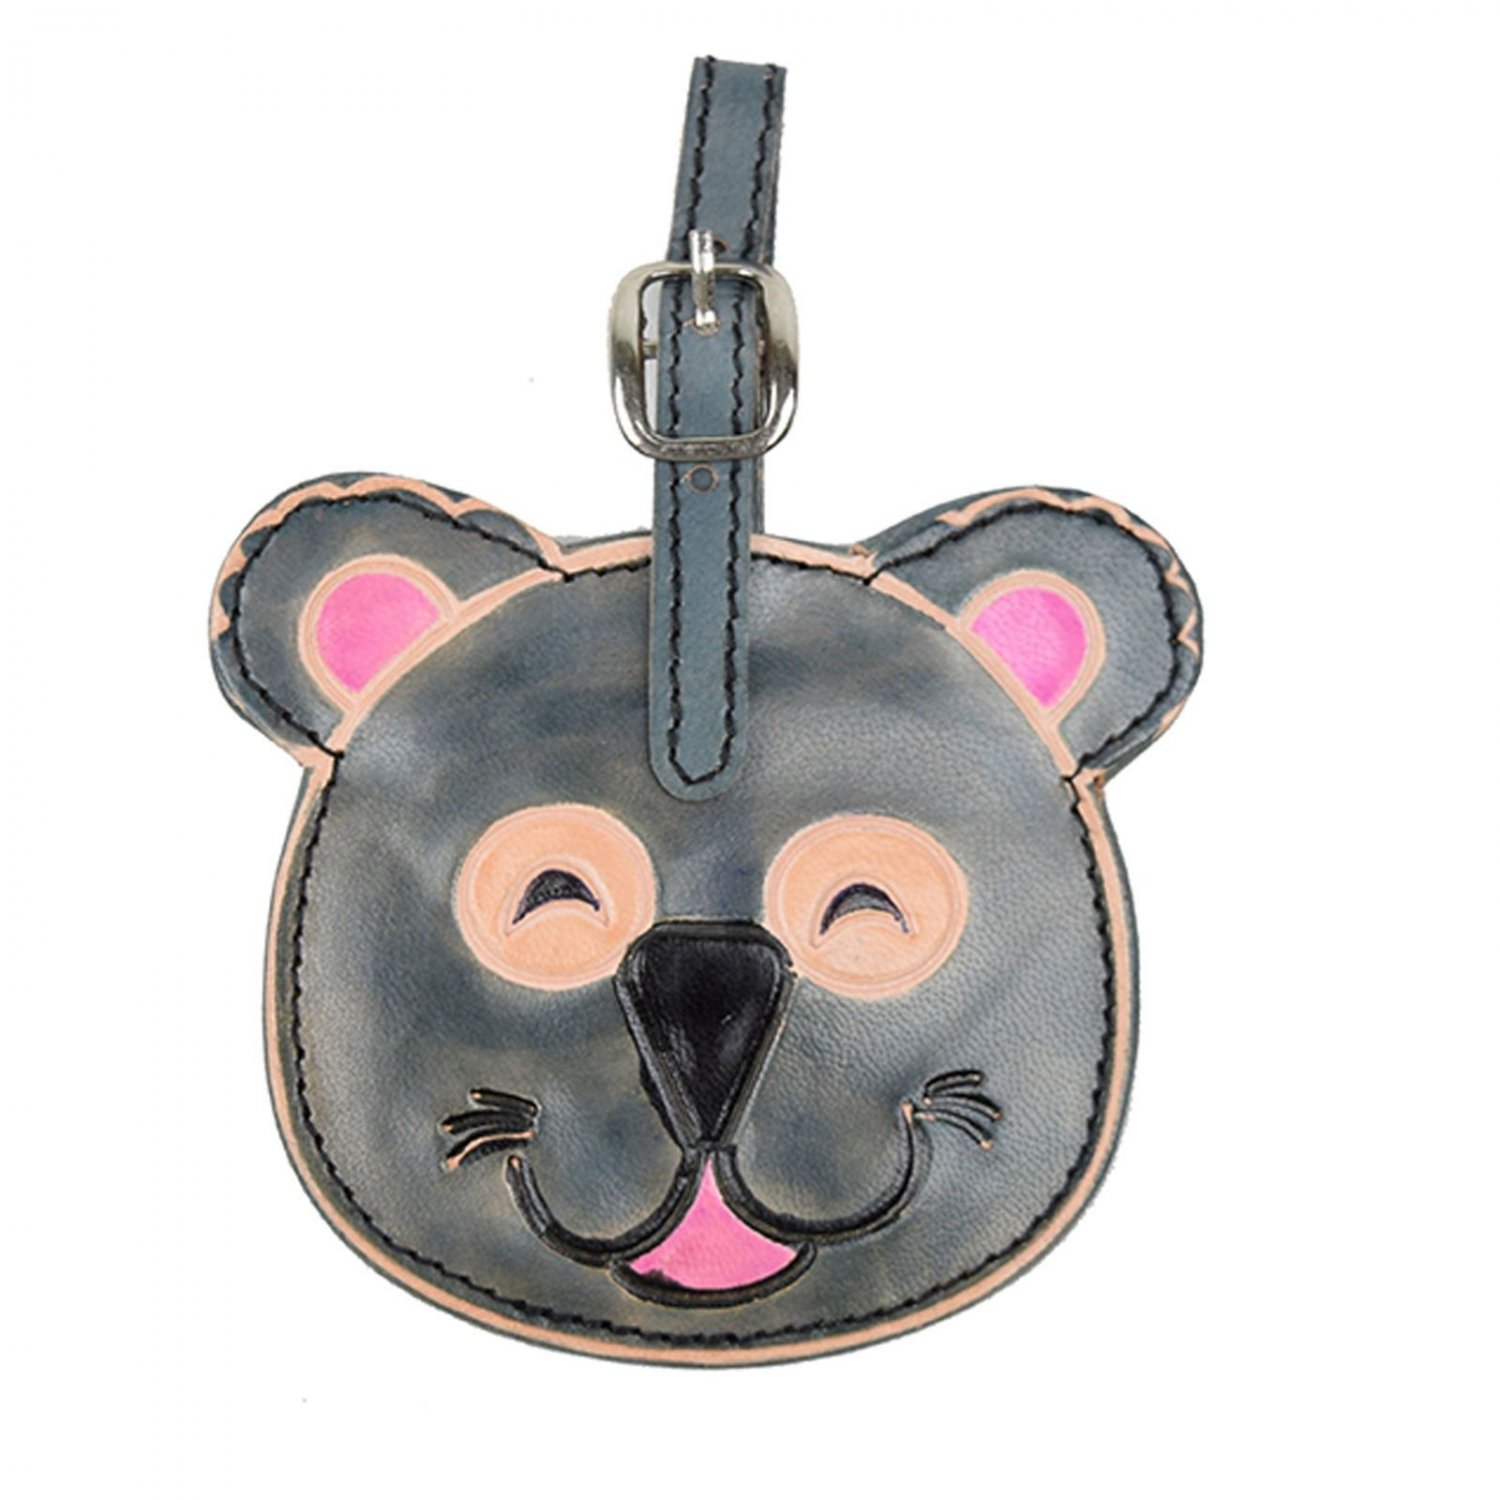 Smiling Koala Luggage Animal Leather Tags Print ID Suitcase Travel Tag